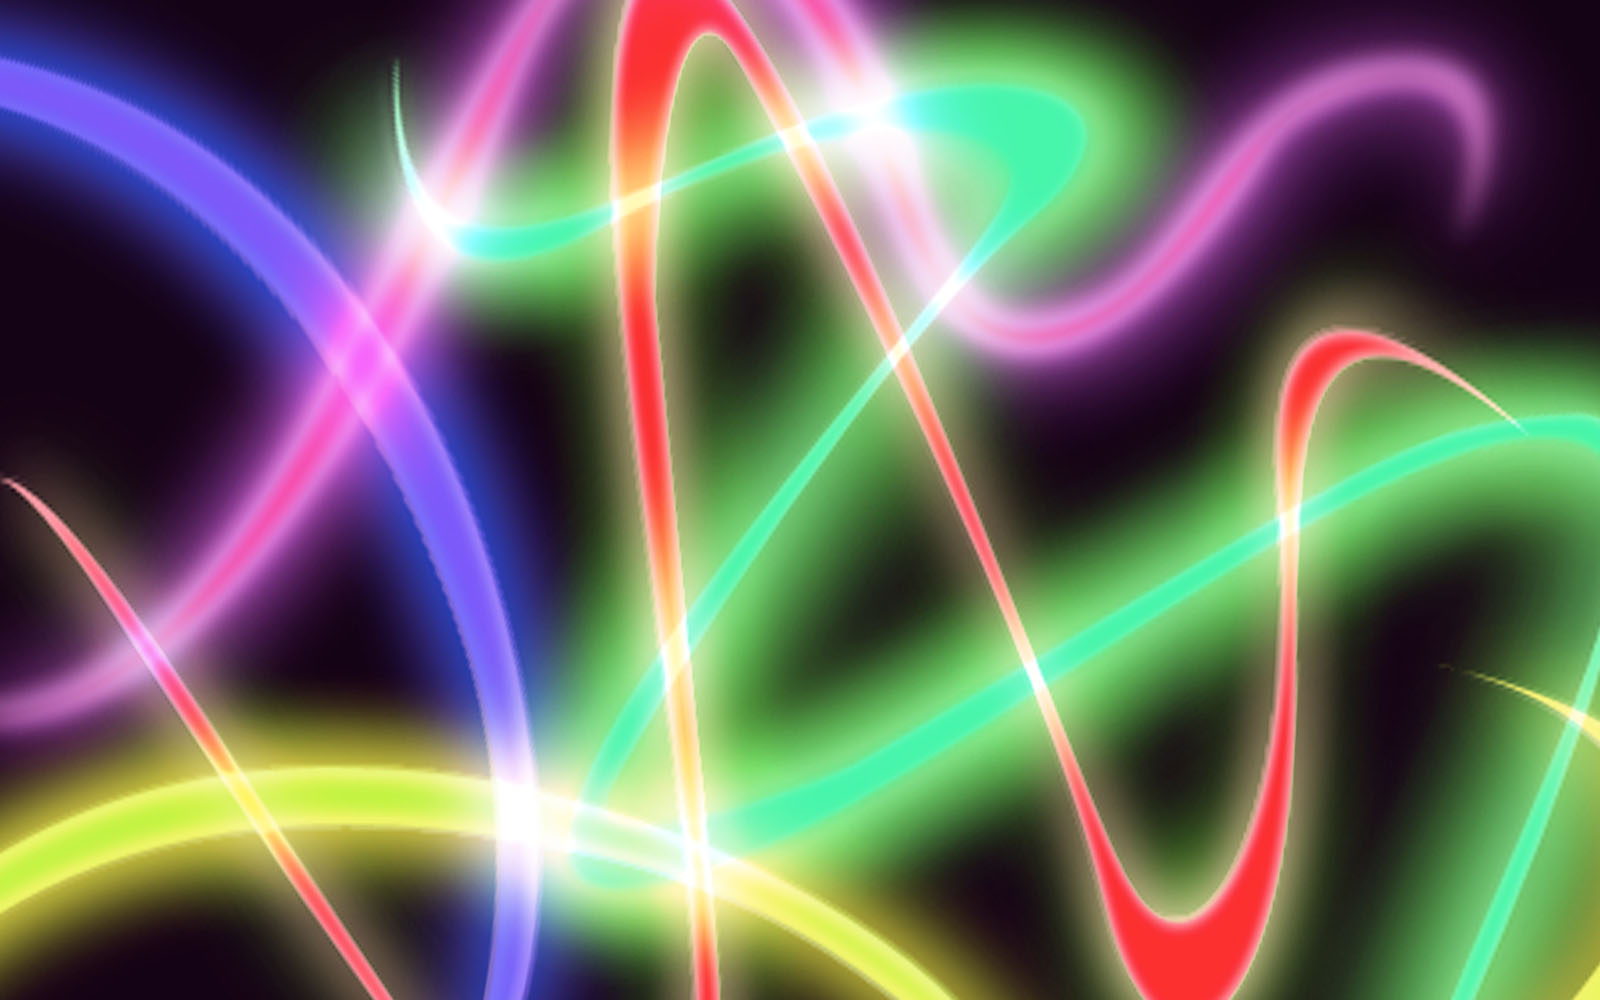 wallpapers Abstract Neon Wallpapers 1600x1000